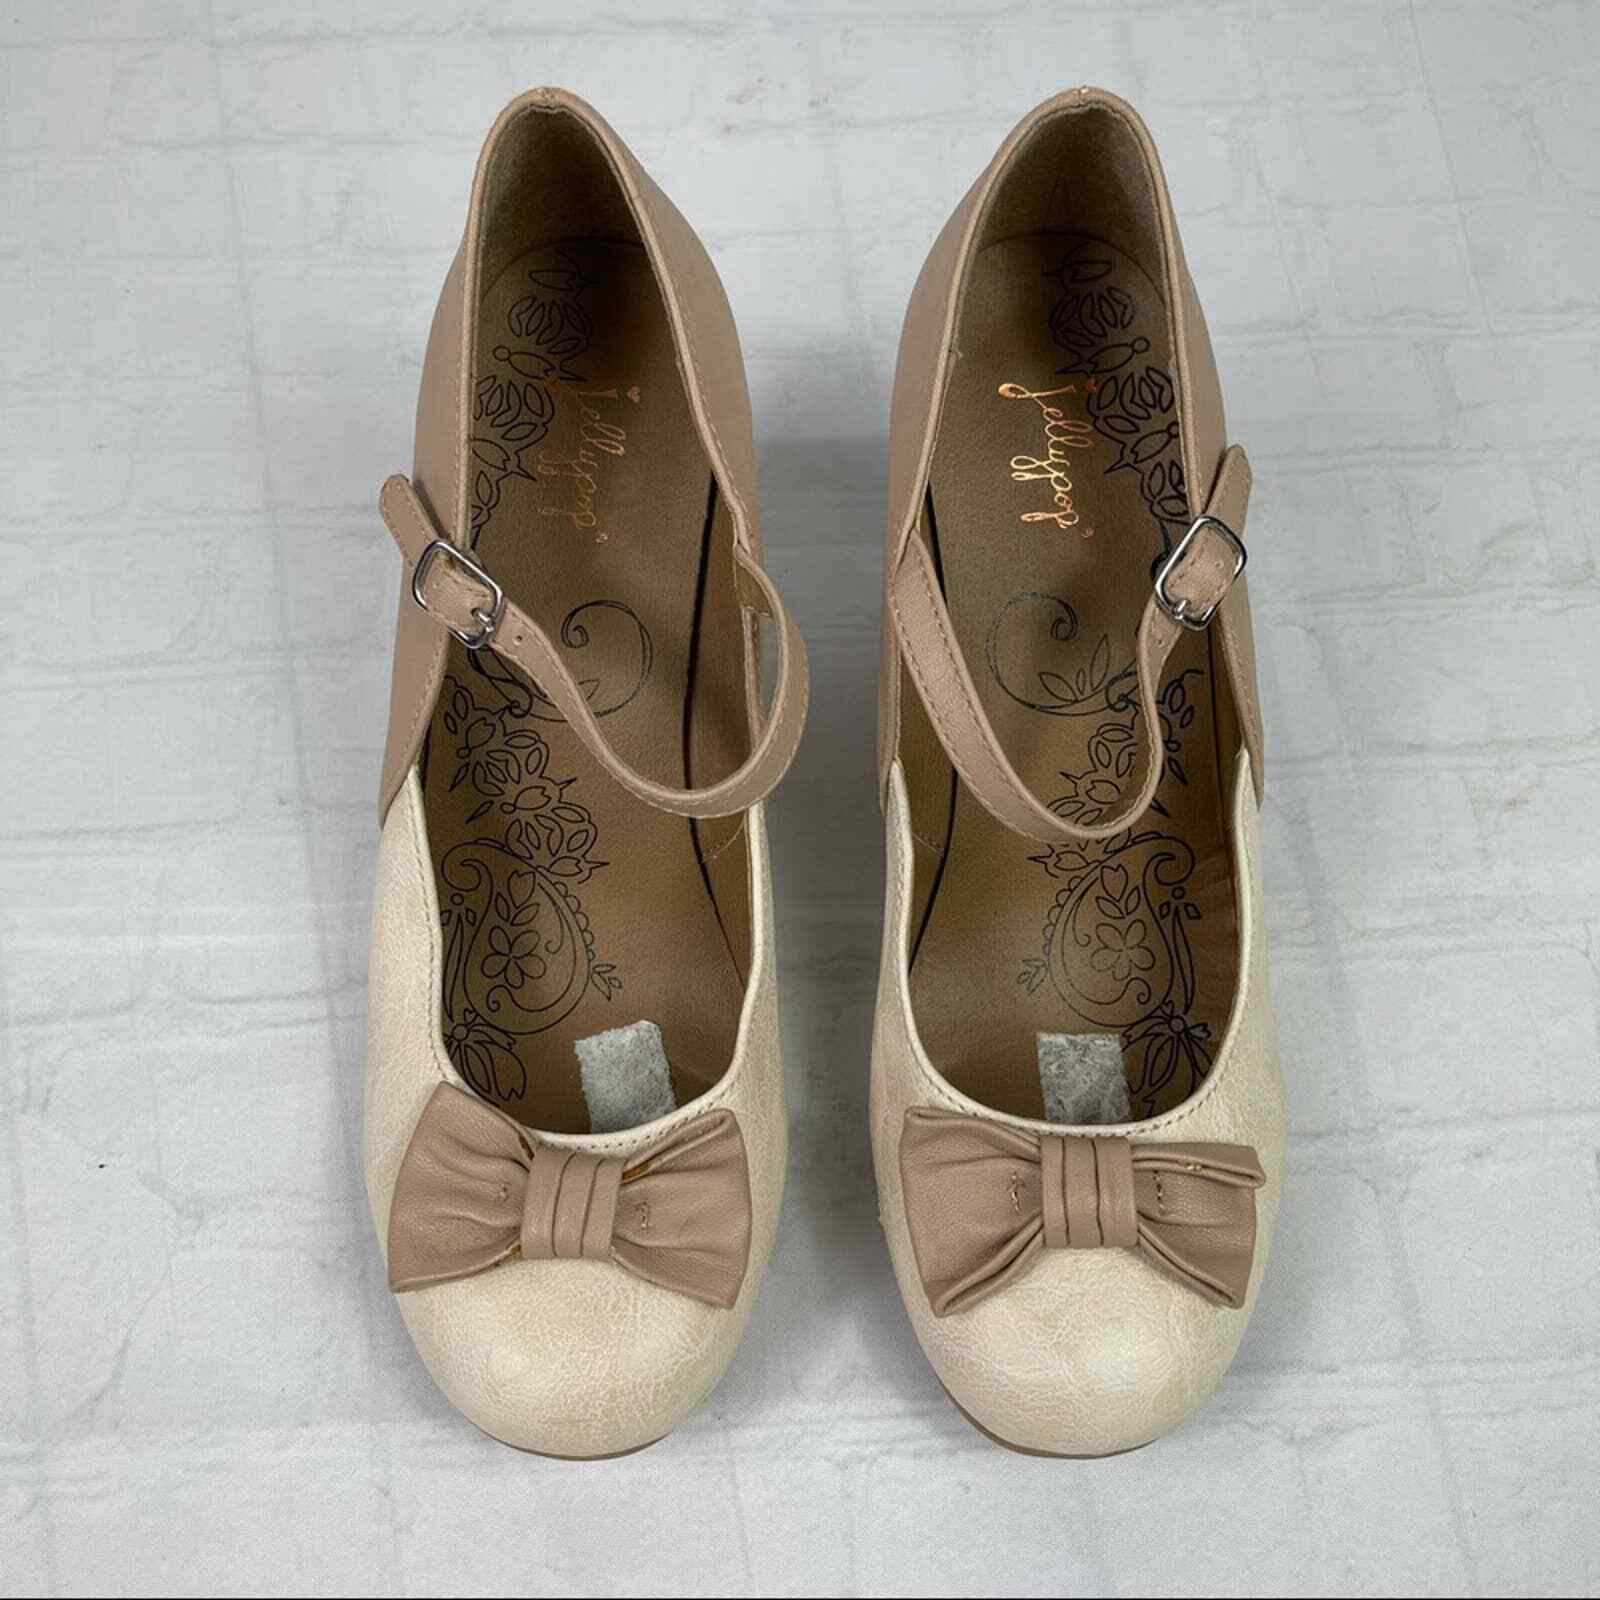 Jelly pop nude bow Mary Jane pumps - image 6